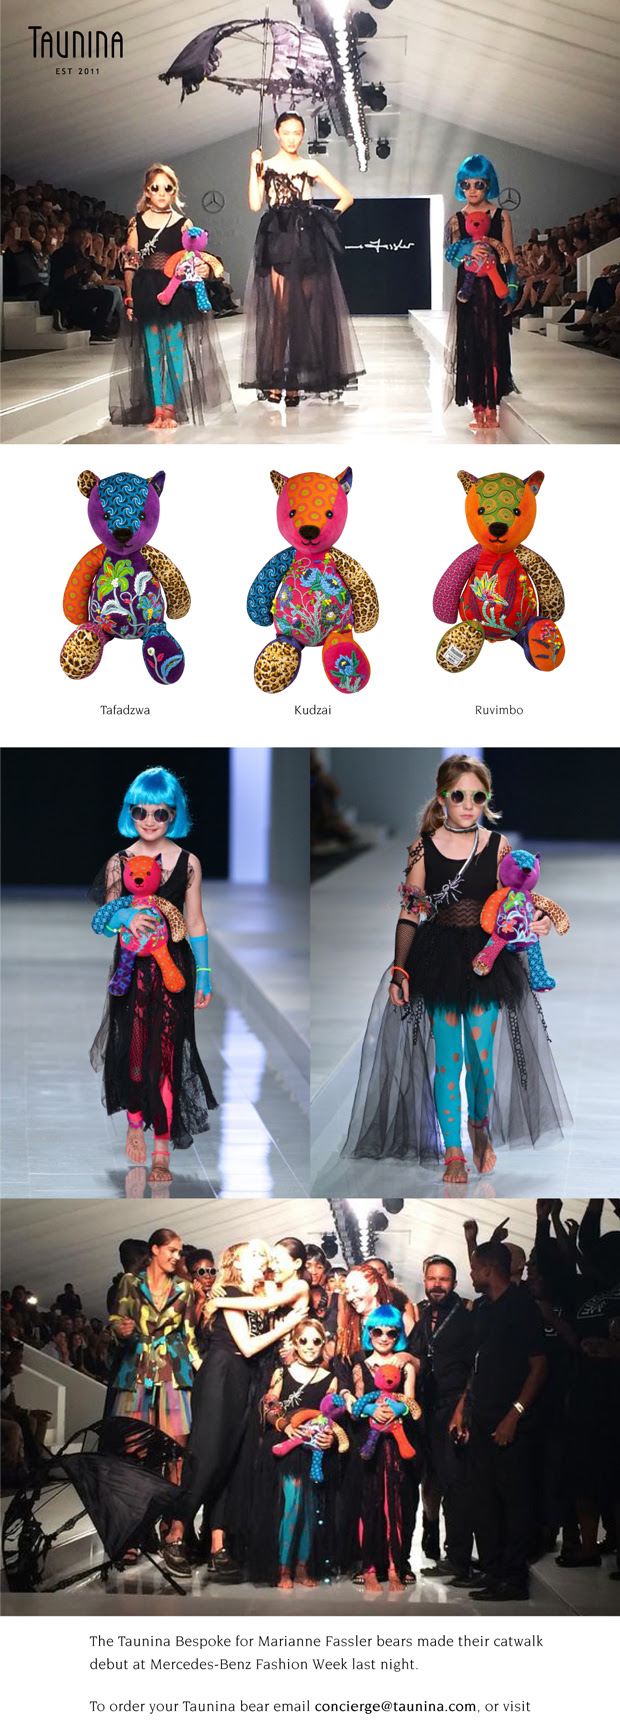 Tuanina Bespoke Bears for Marianne Fassler at Mercedes-Benz